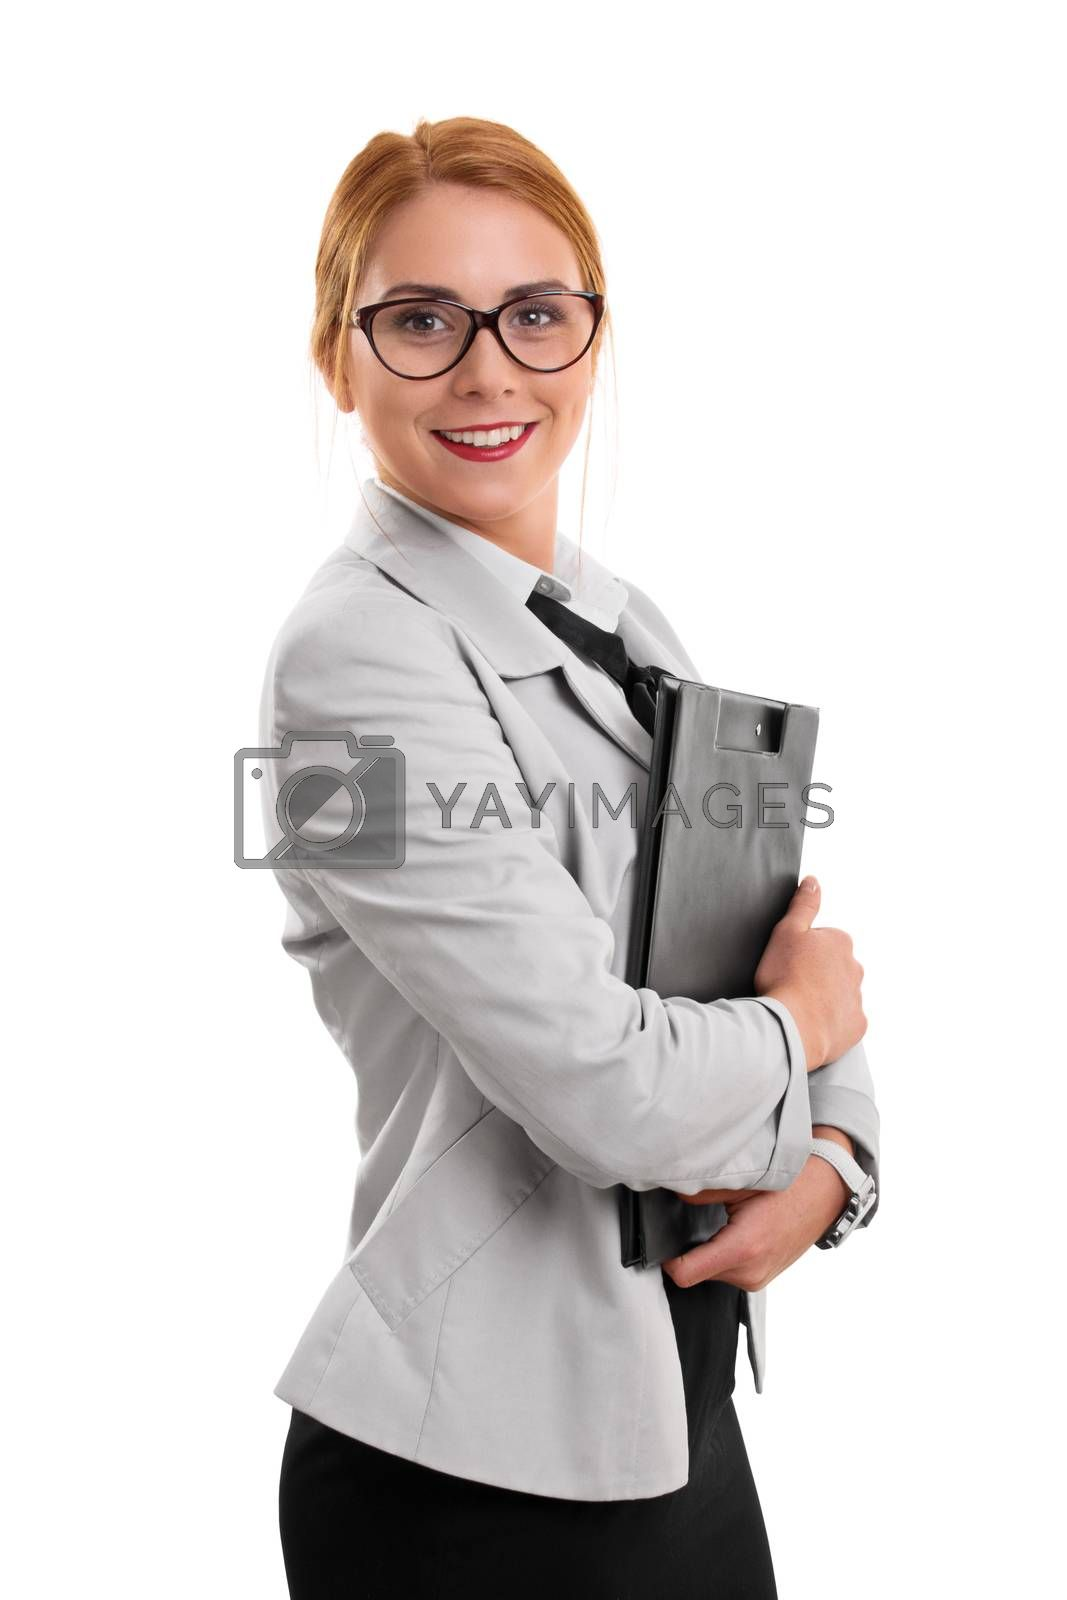 Portrait of a beautiful smiling young fashionable businesswoman holding a clipboard, isolated on white background.